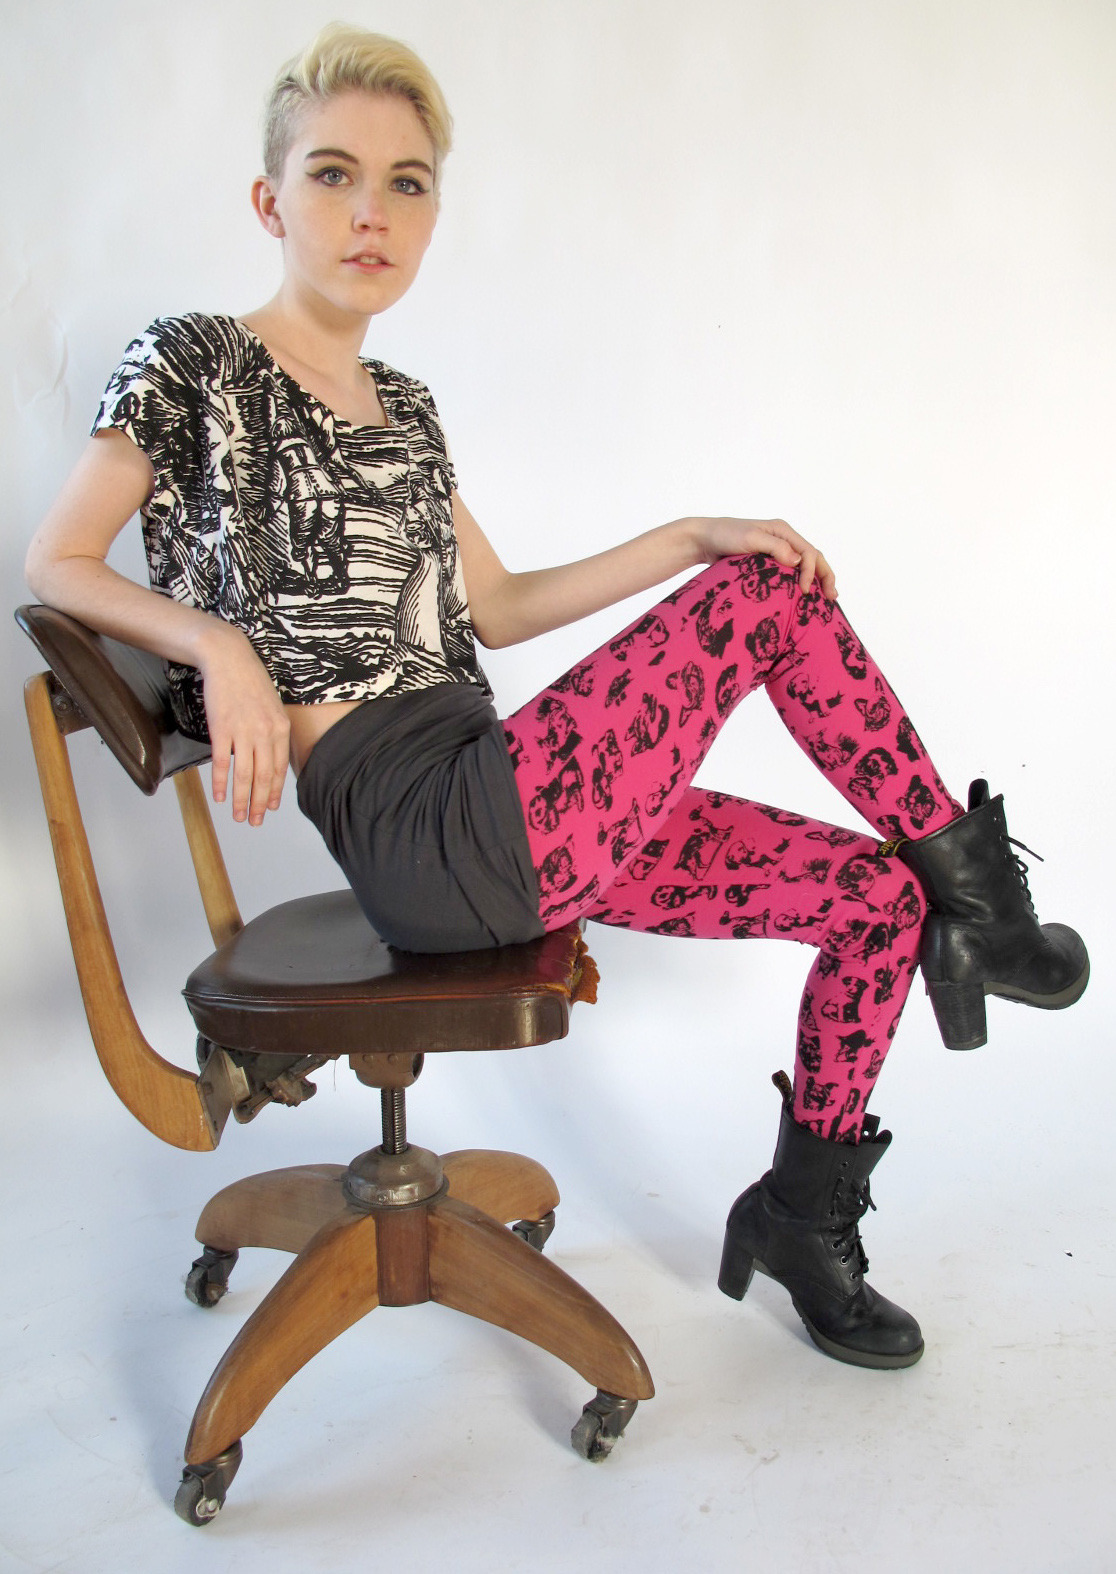 the Pretty Snake summer look! witch crop top tee and puppy leggings :) http://www.etsy.com/shop/PrettySnake